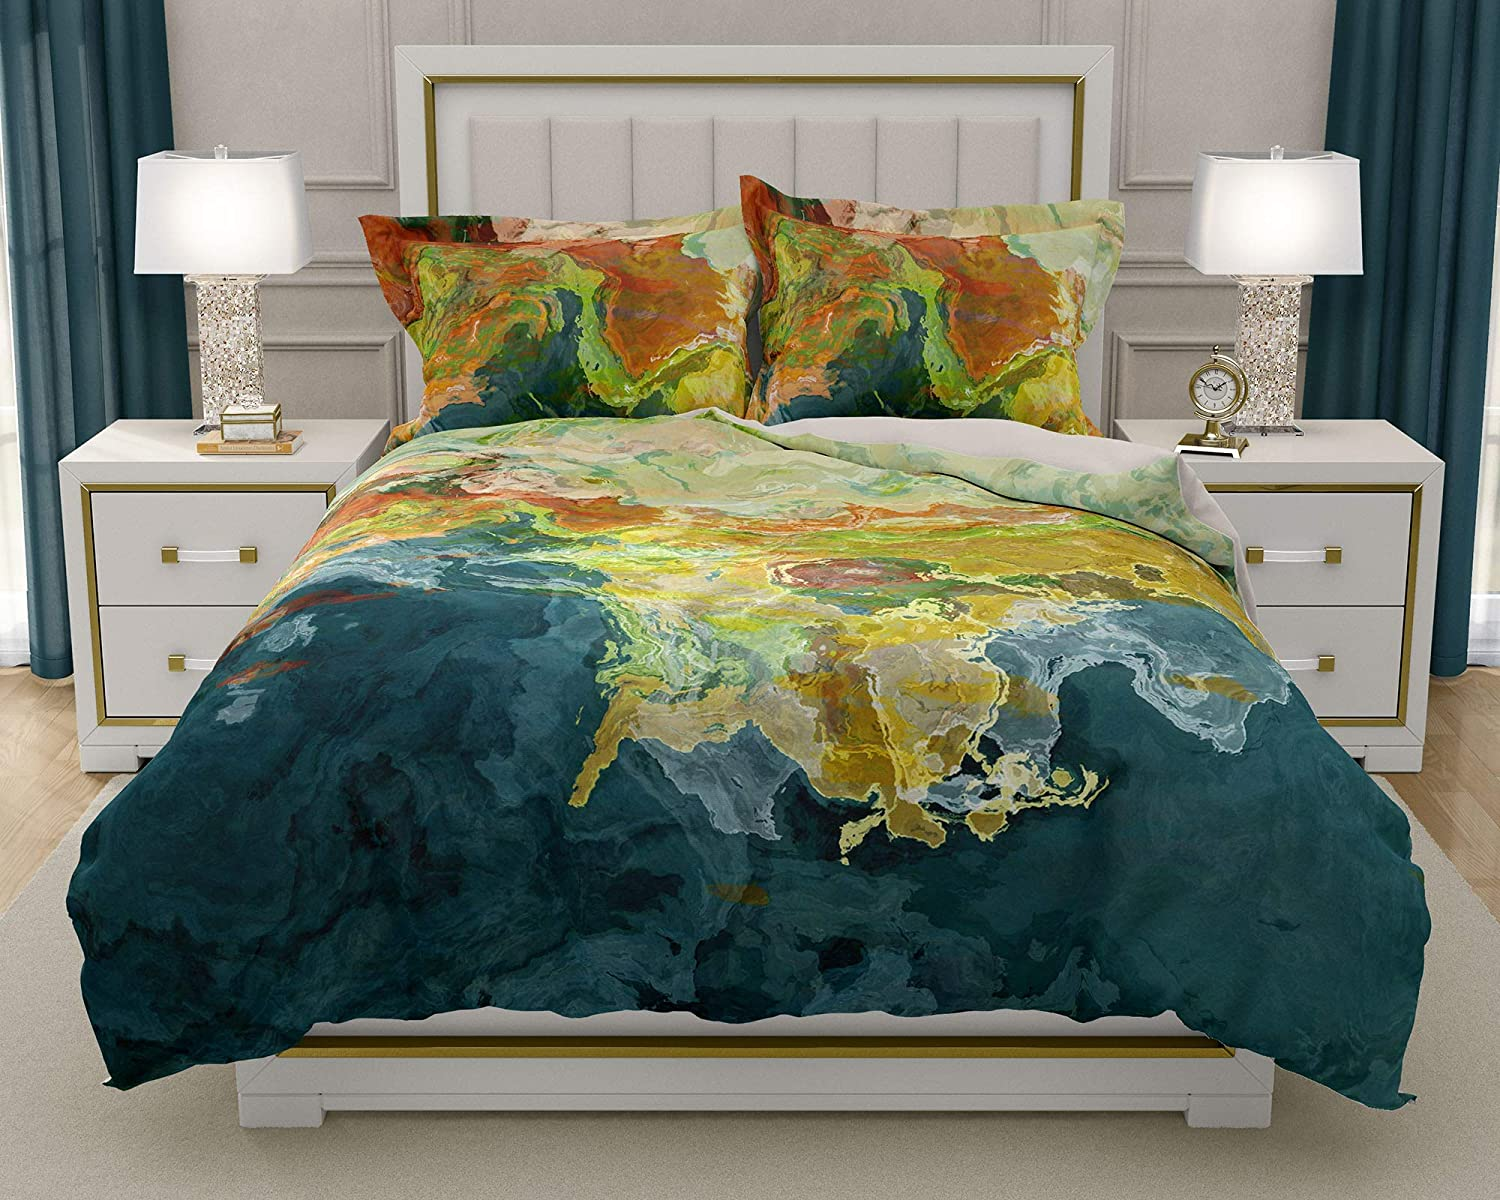 Image of King or Queen 3 pc Duvet Cover Set with abstract art, Finer Things